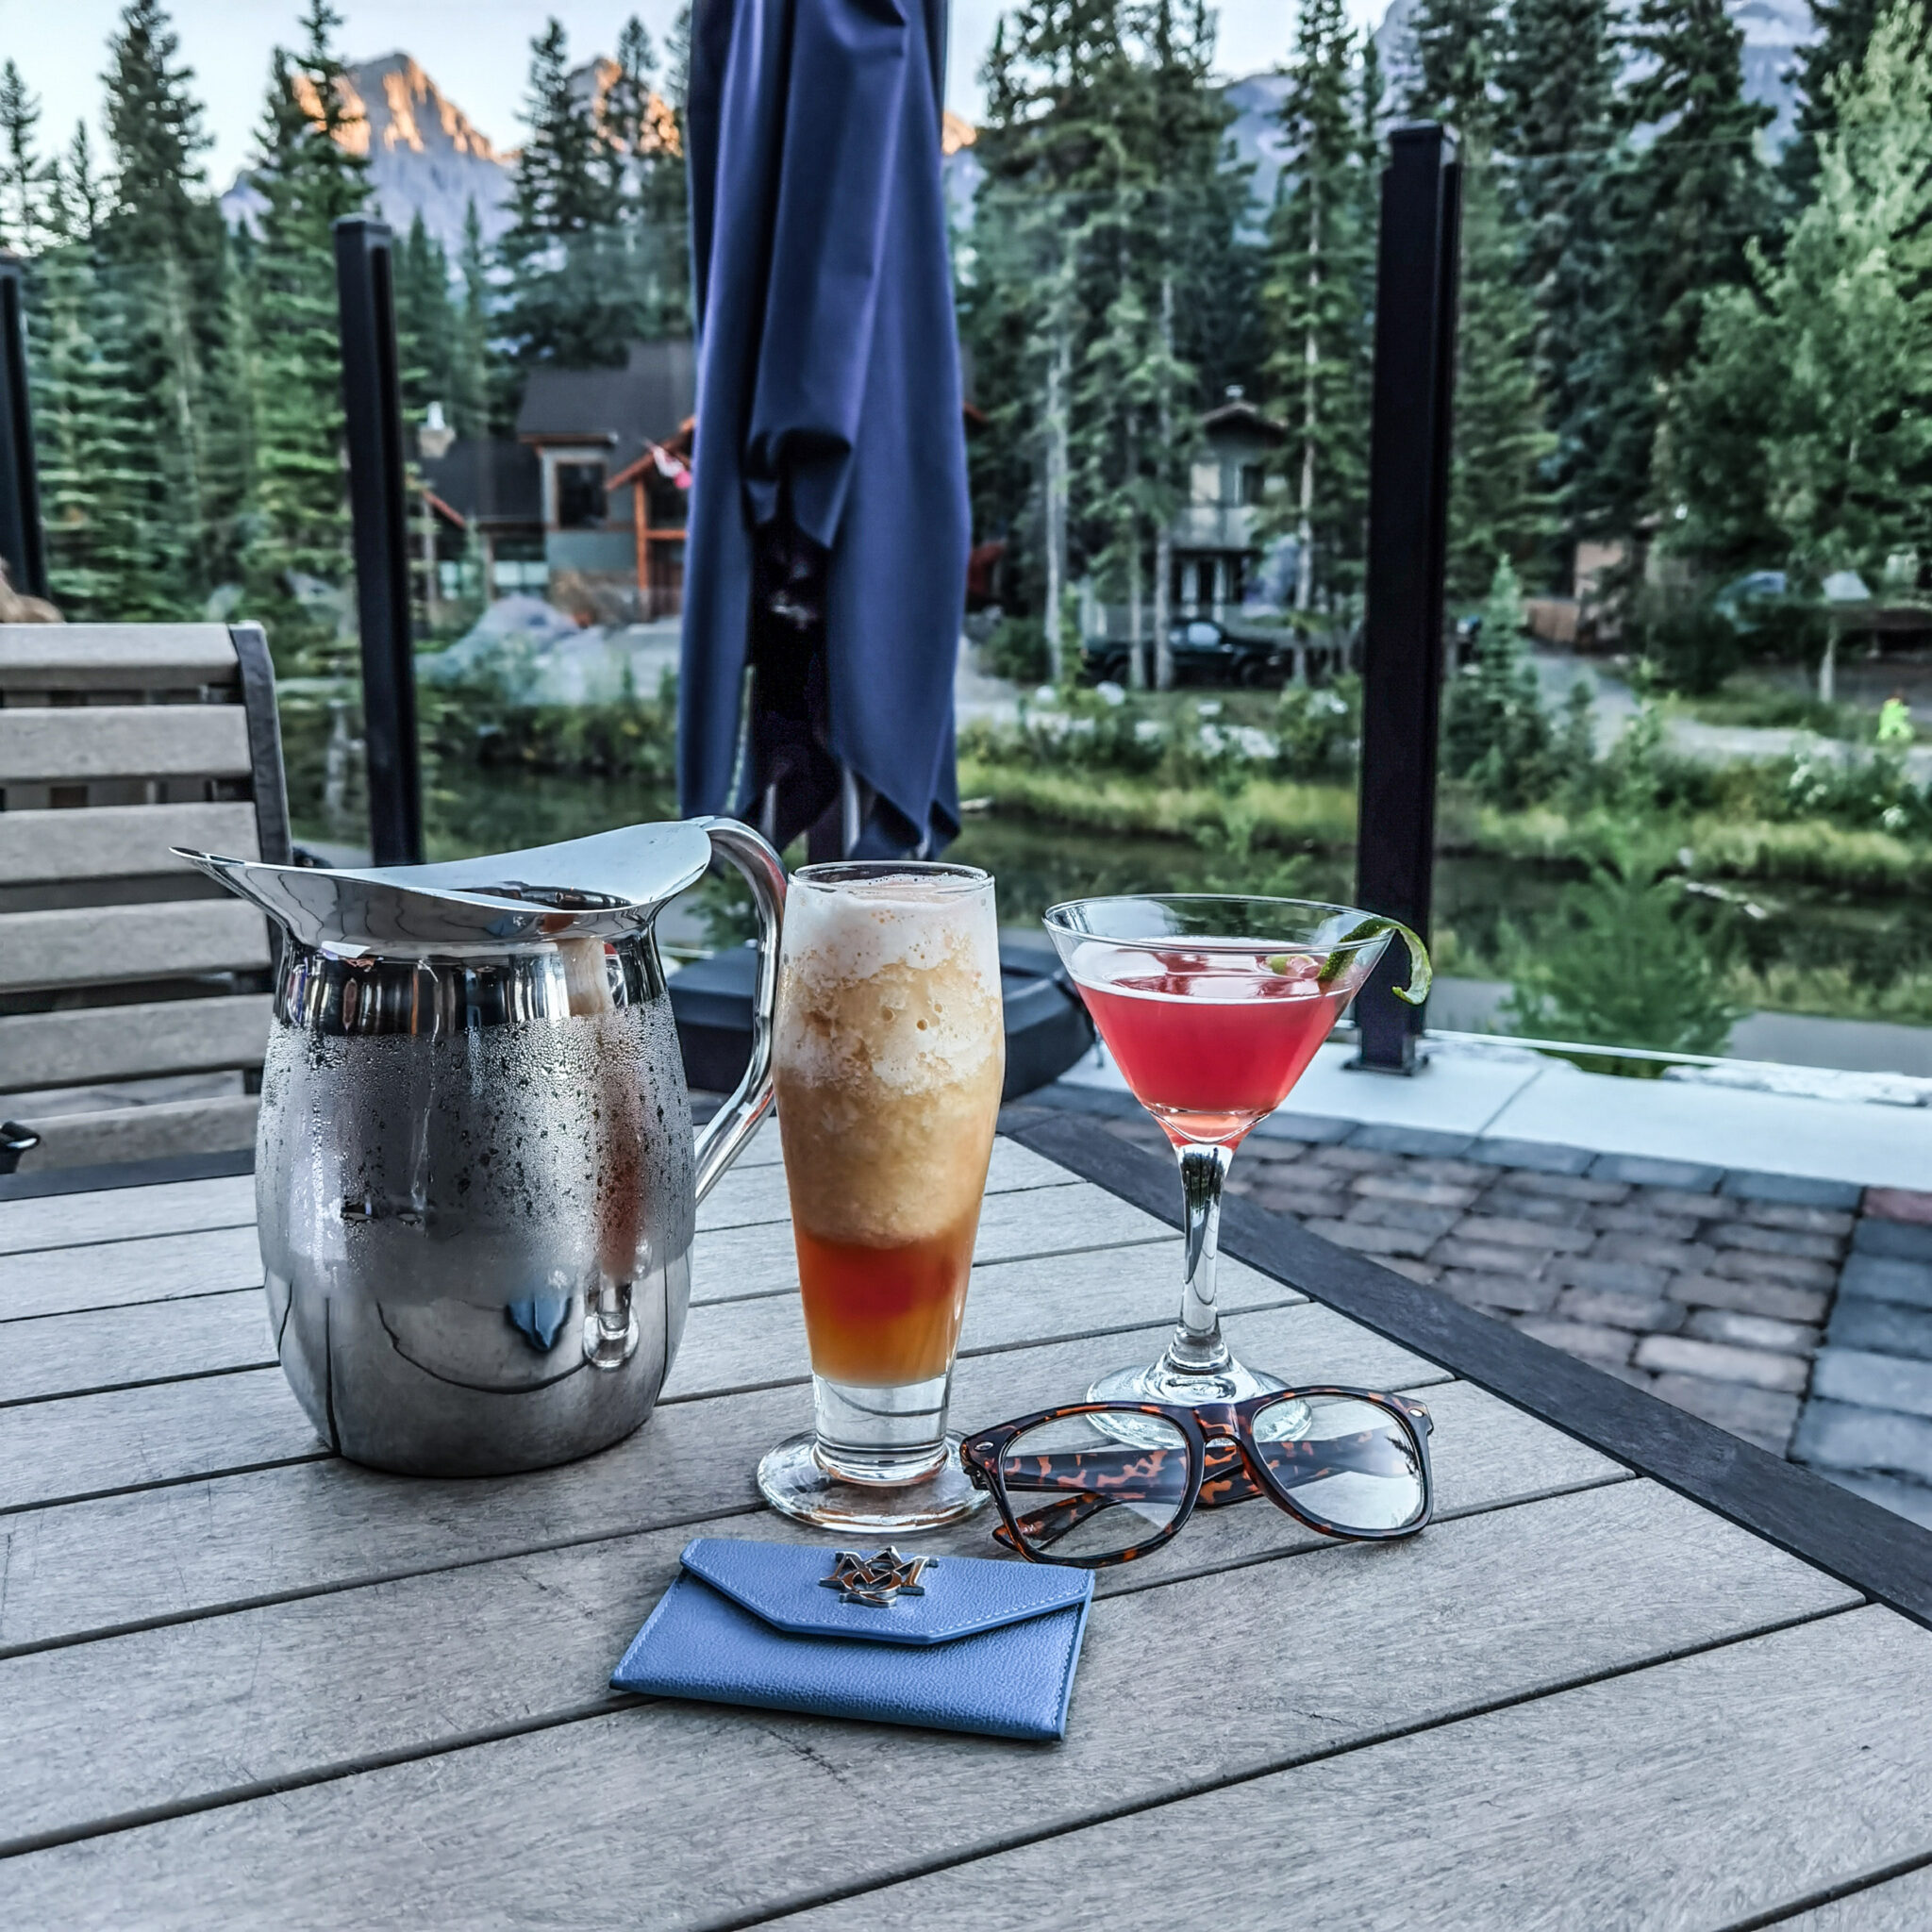 Hotel Malcolm Canmore Alberta - Canadian Rockies - Drinks